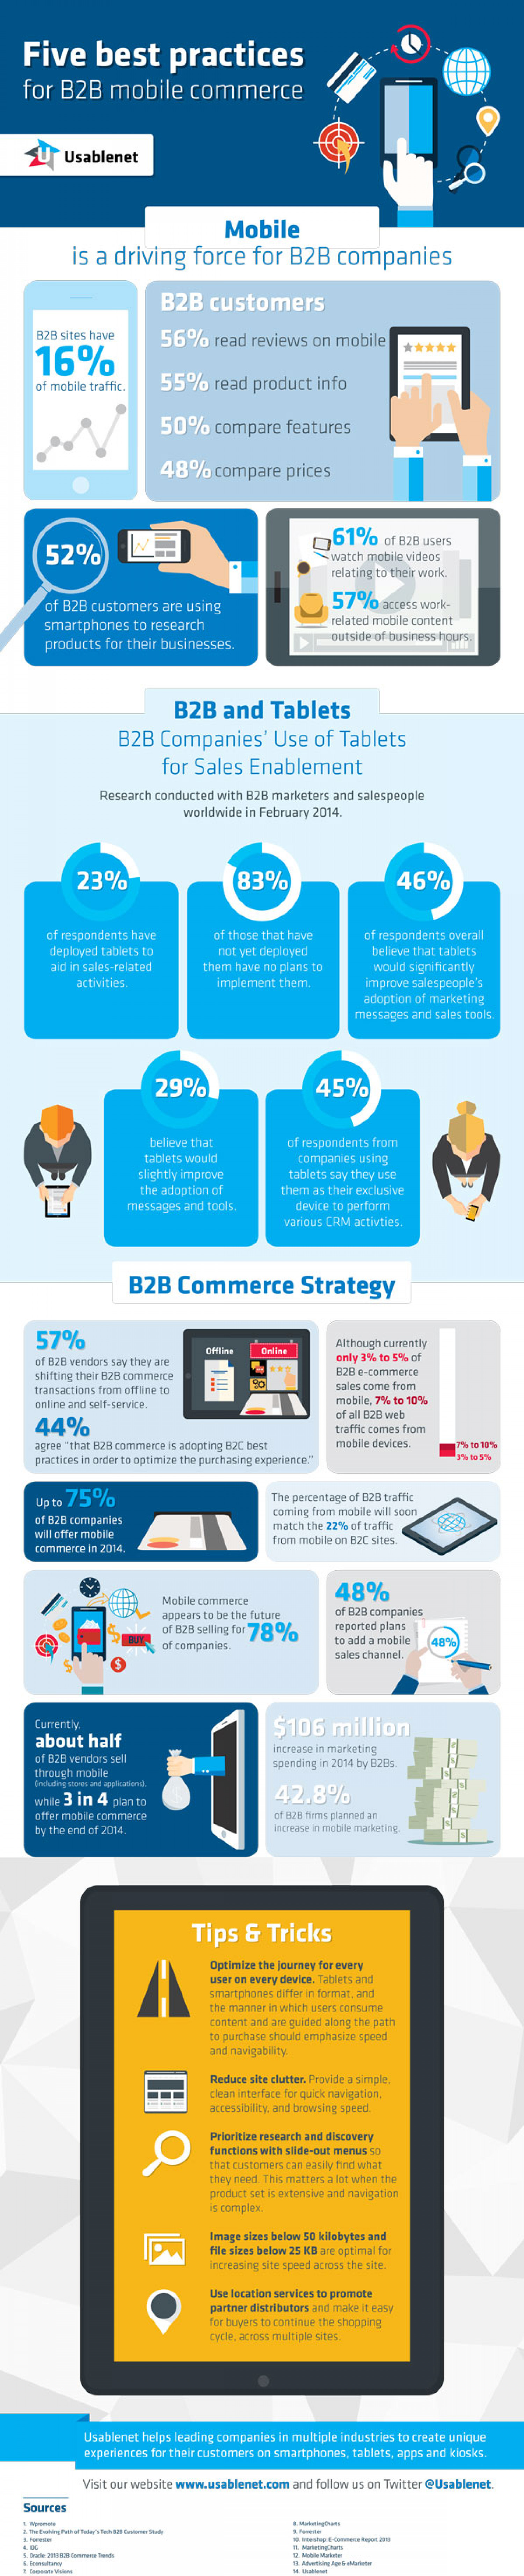 Infographic - Five Best Practices for B2B Mobile Commerce Infographic